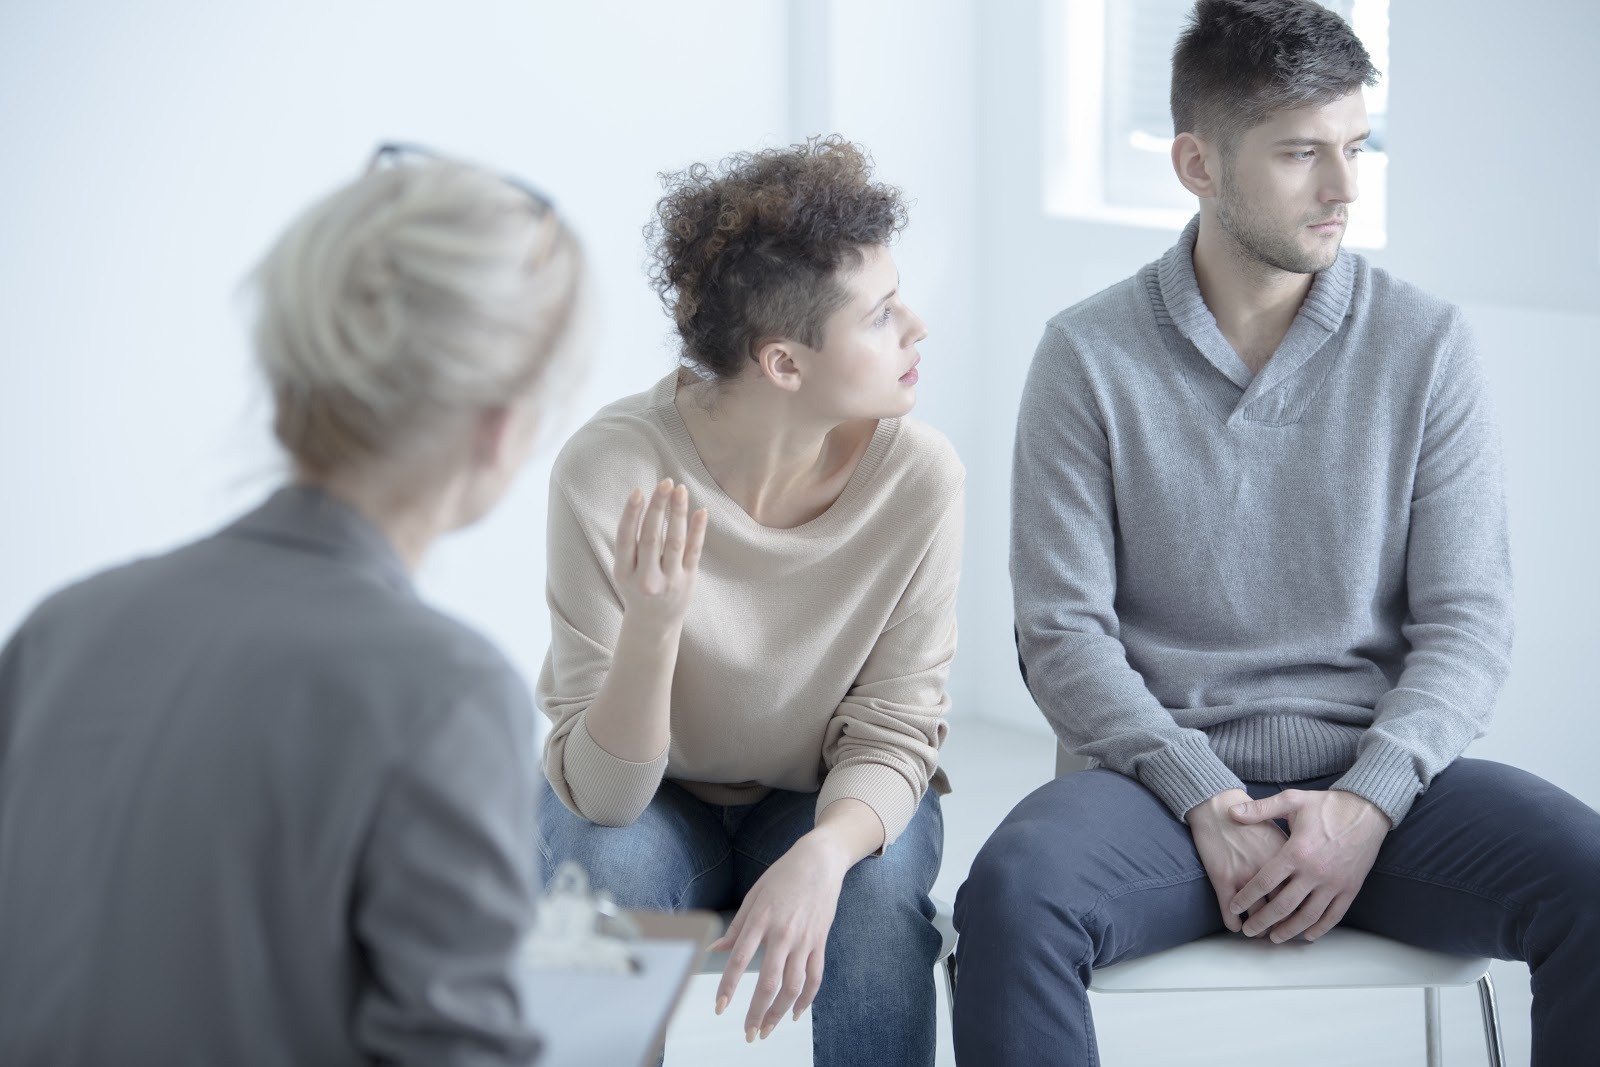 (Attending relationship therapy can help partners heal after an affair.)